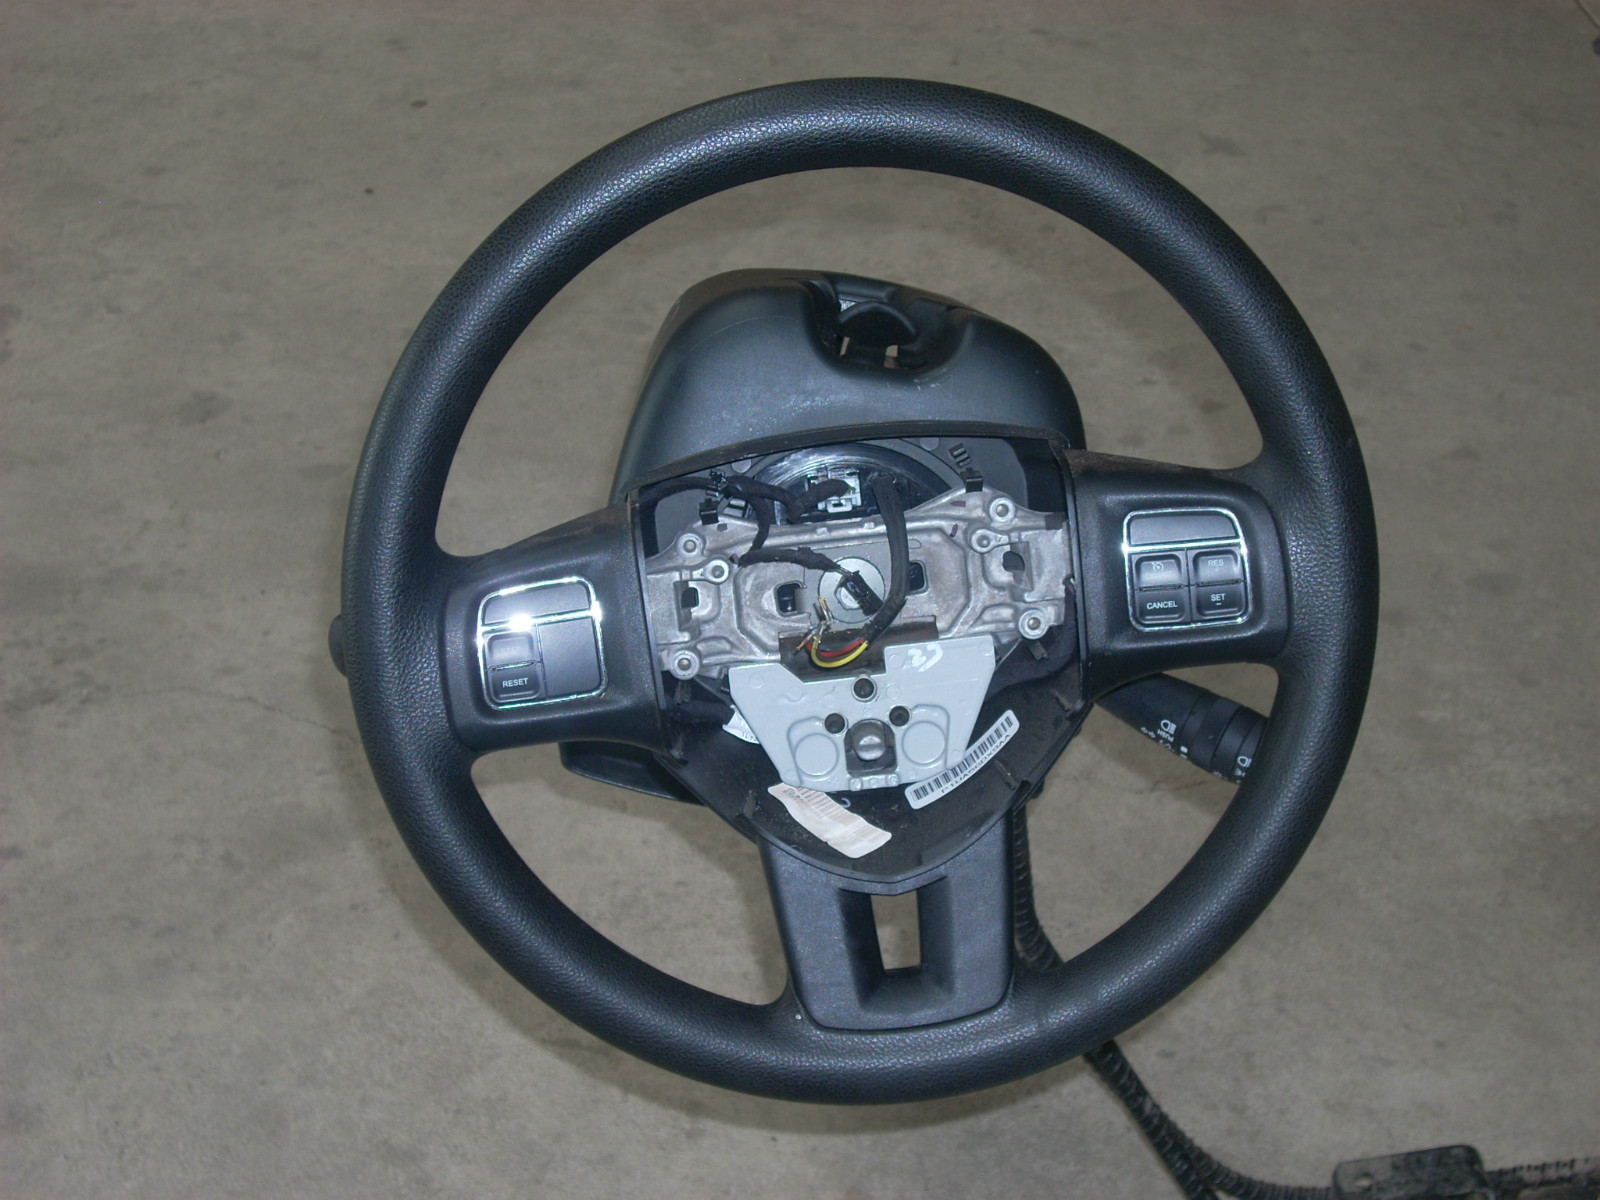 2011 DODGE AVENGER STEERING WHEEL